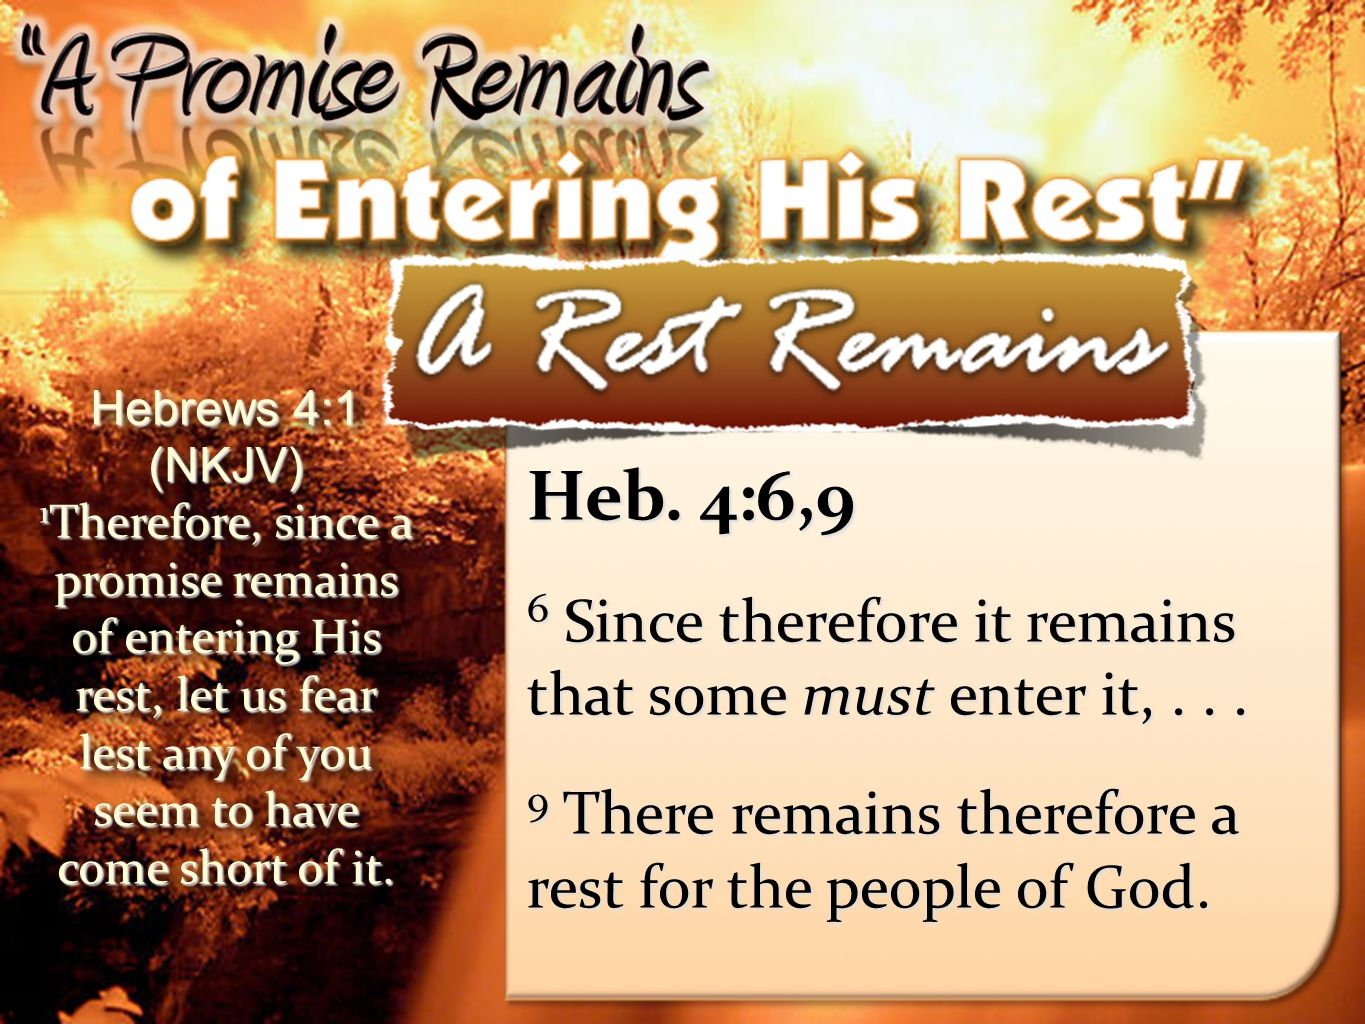 Heb. 4:6,9 6 Since therefore it remains that some must enter it, . . .